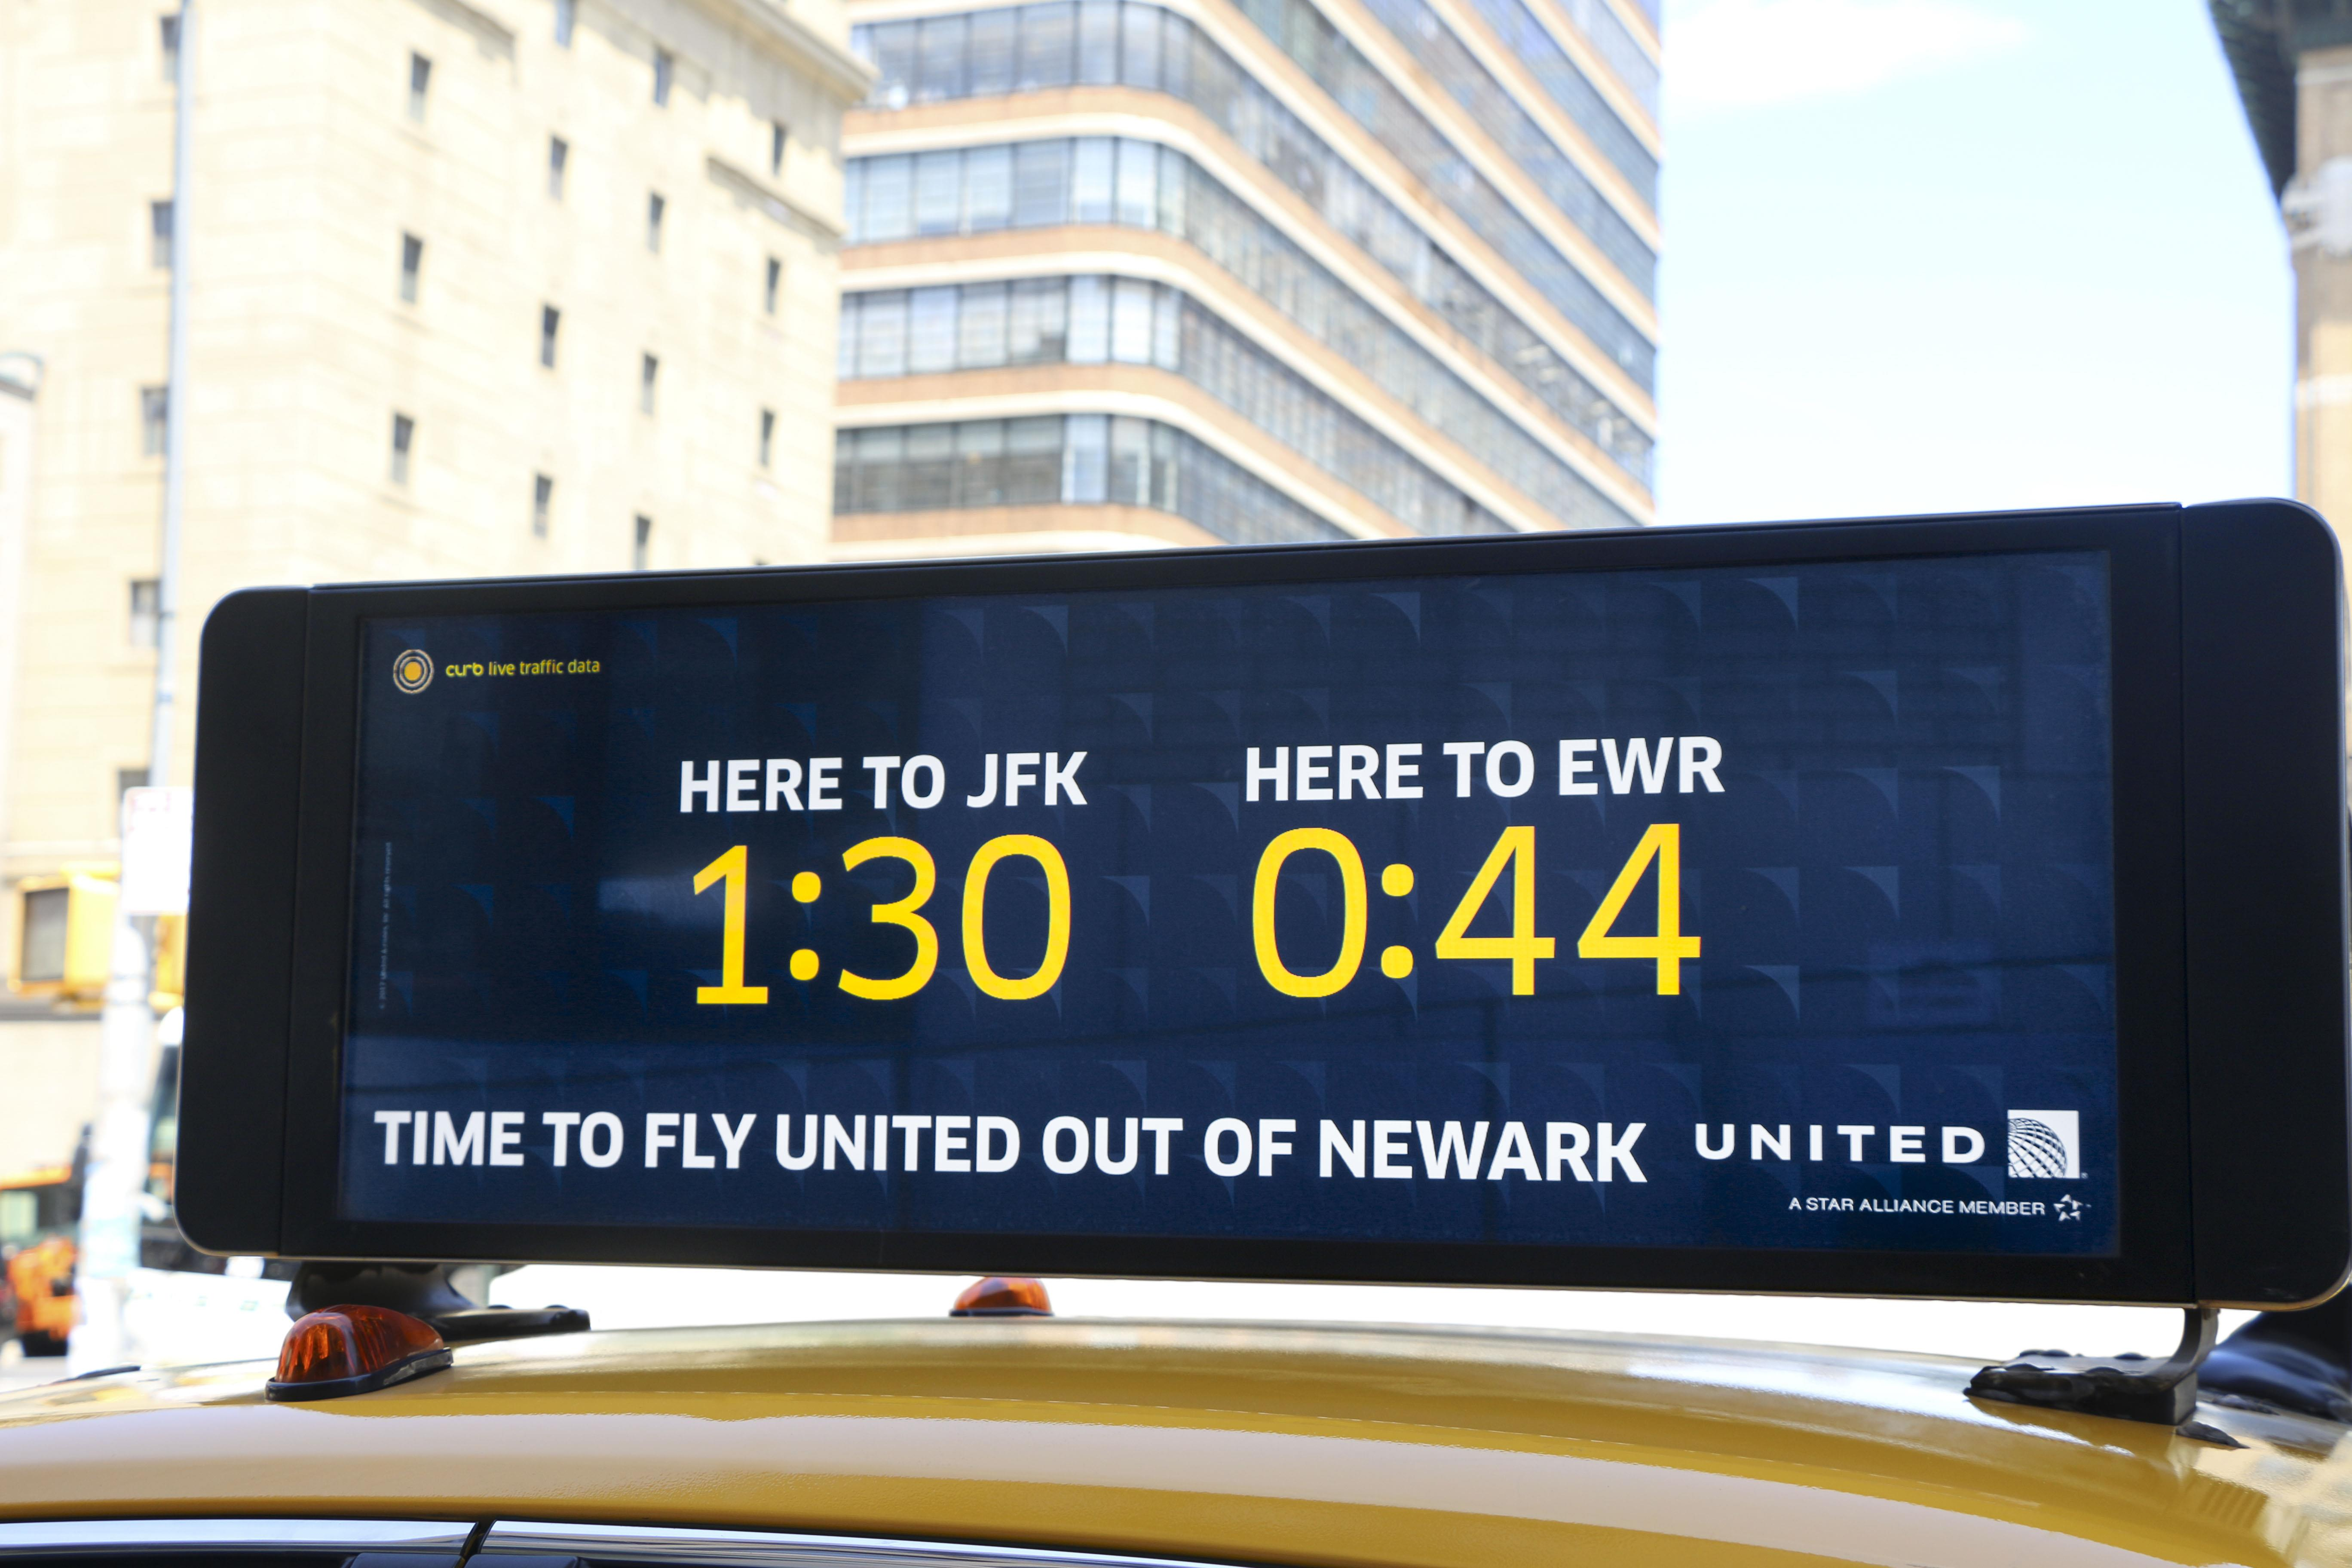 United Airlines uses real-time traffic data to prove that New Yorkers should fly out of Newark versus JFK